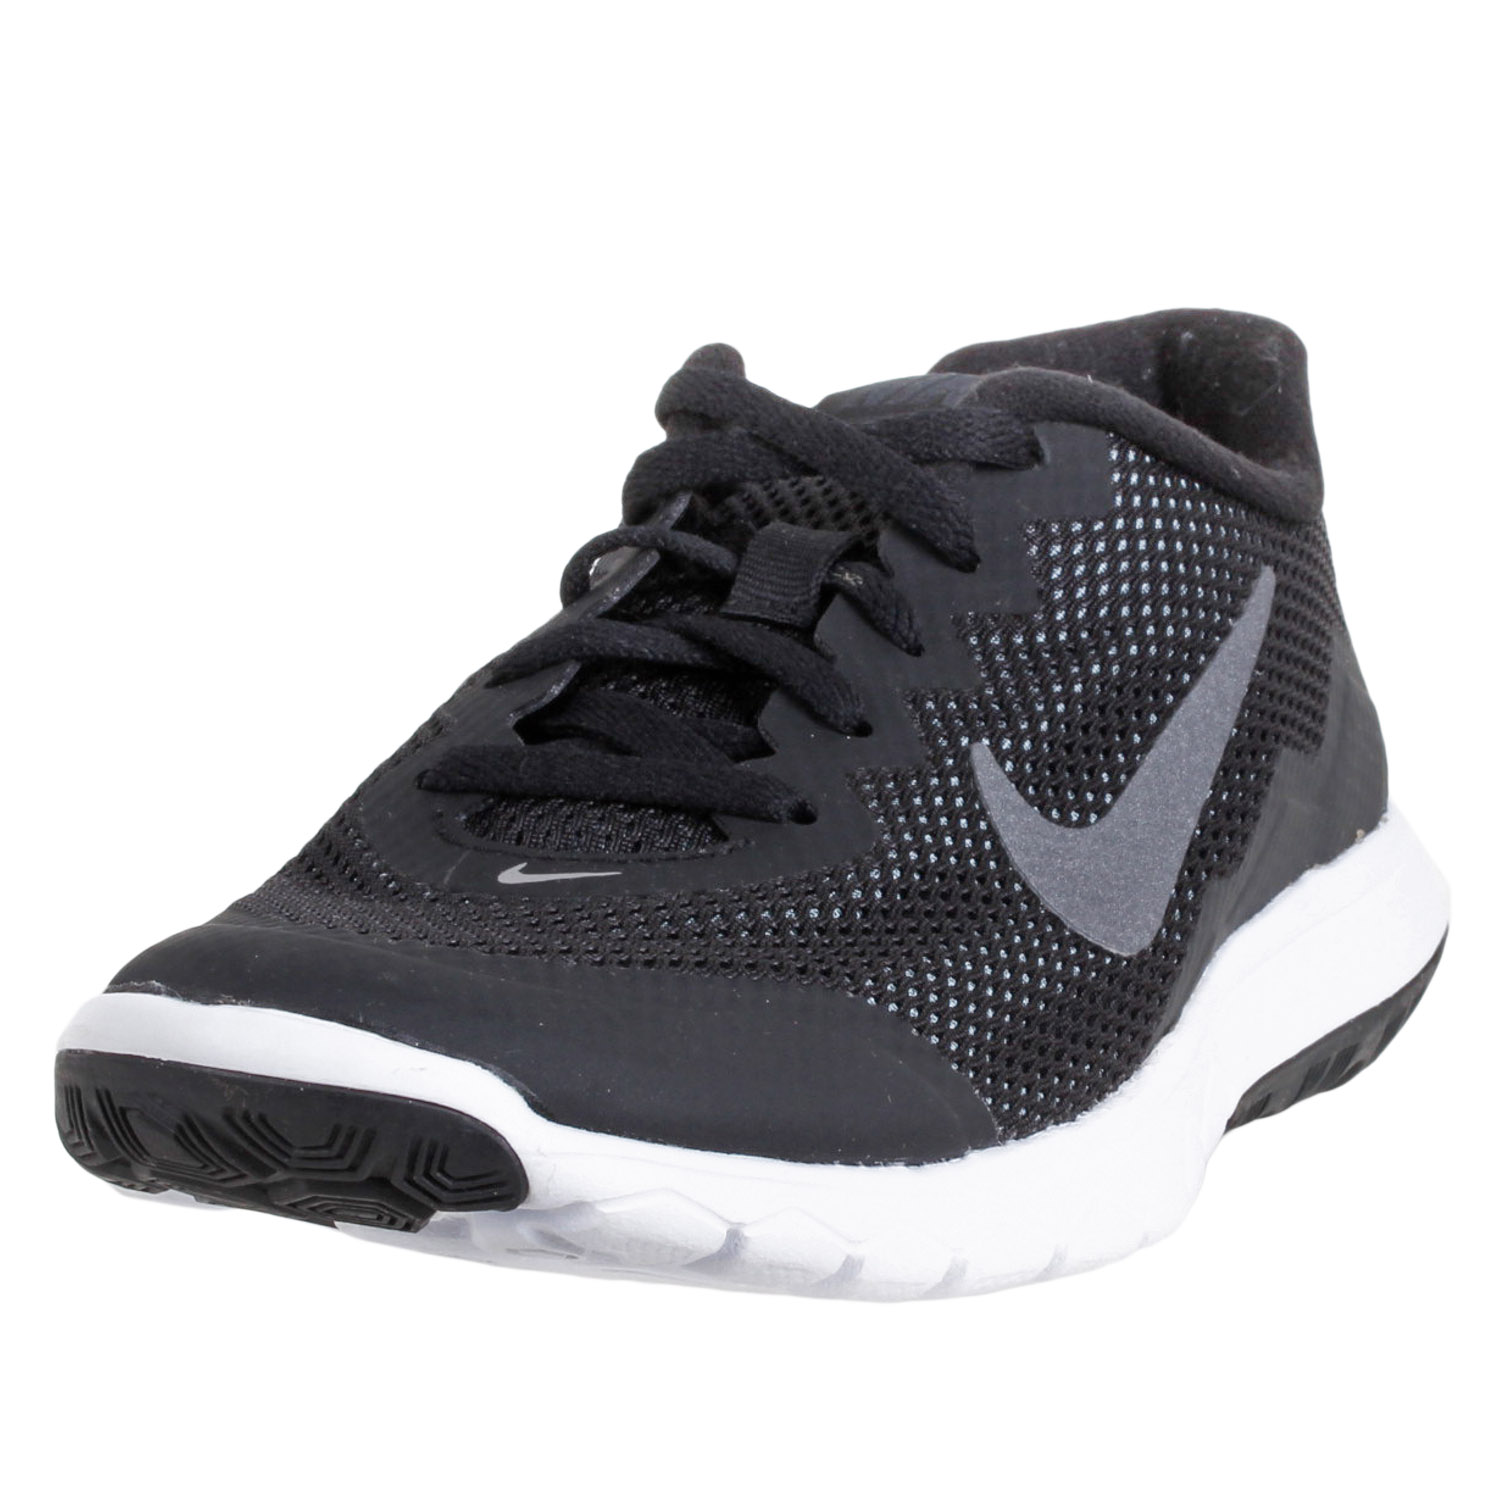 b1fc8ec9ad4d Details about Nike Women s Flex Experience RN 4 Running Shoes 749178-006-6E  Black Size 6